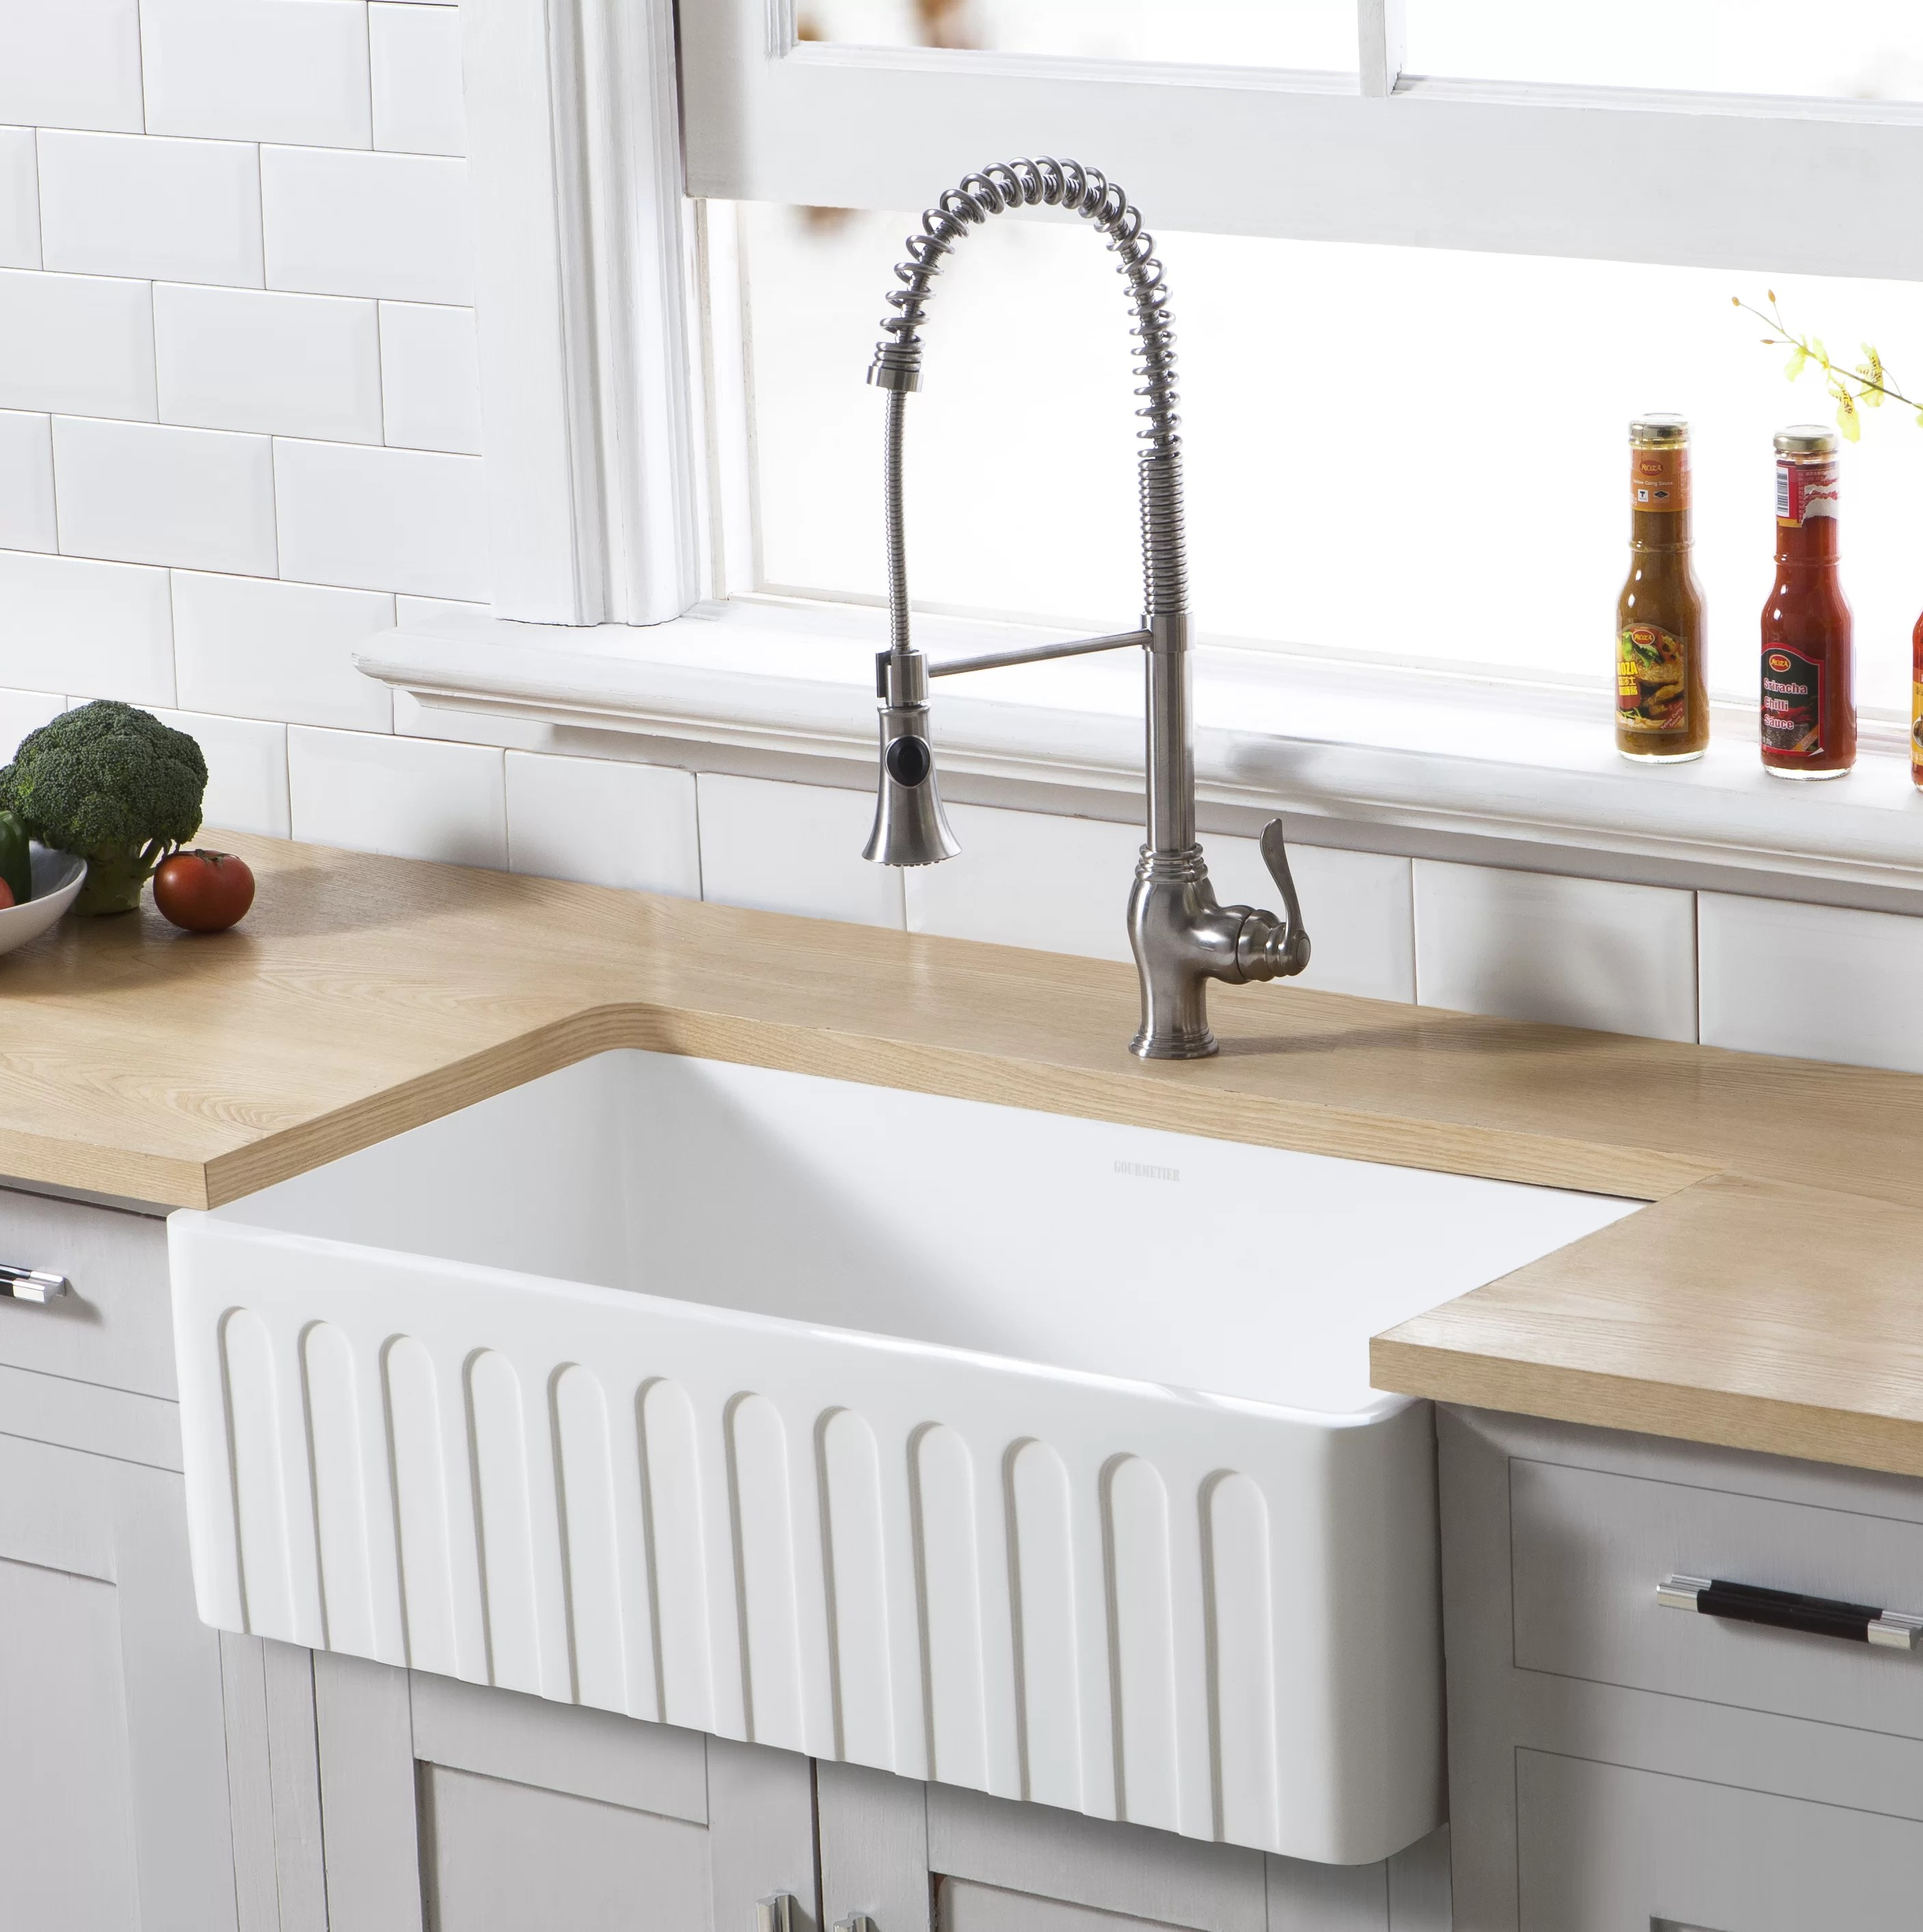 Kitchen Sink For 18 Cabinet Arcticstone Single Bowl 33